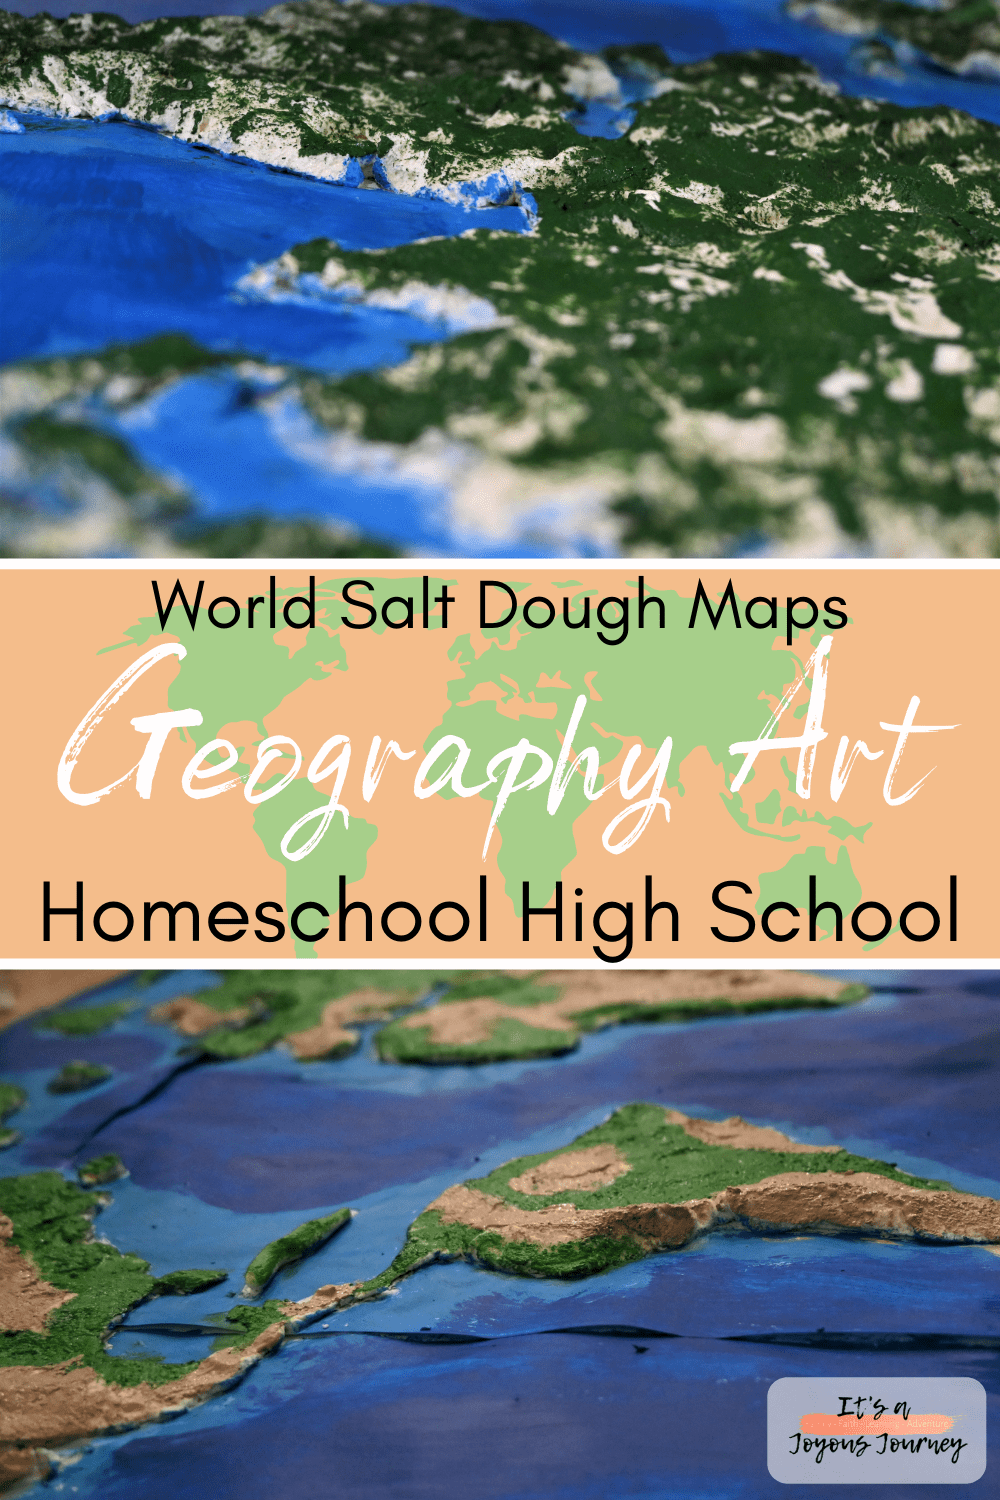 Geography_Art_World_Salt_Dough_Maps